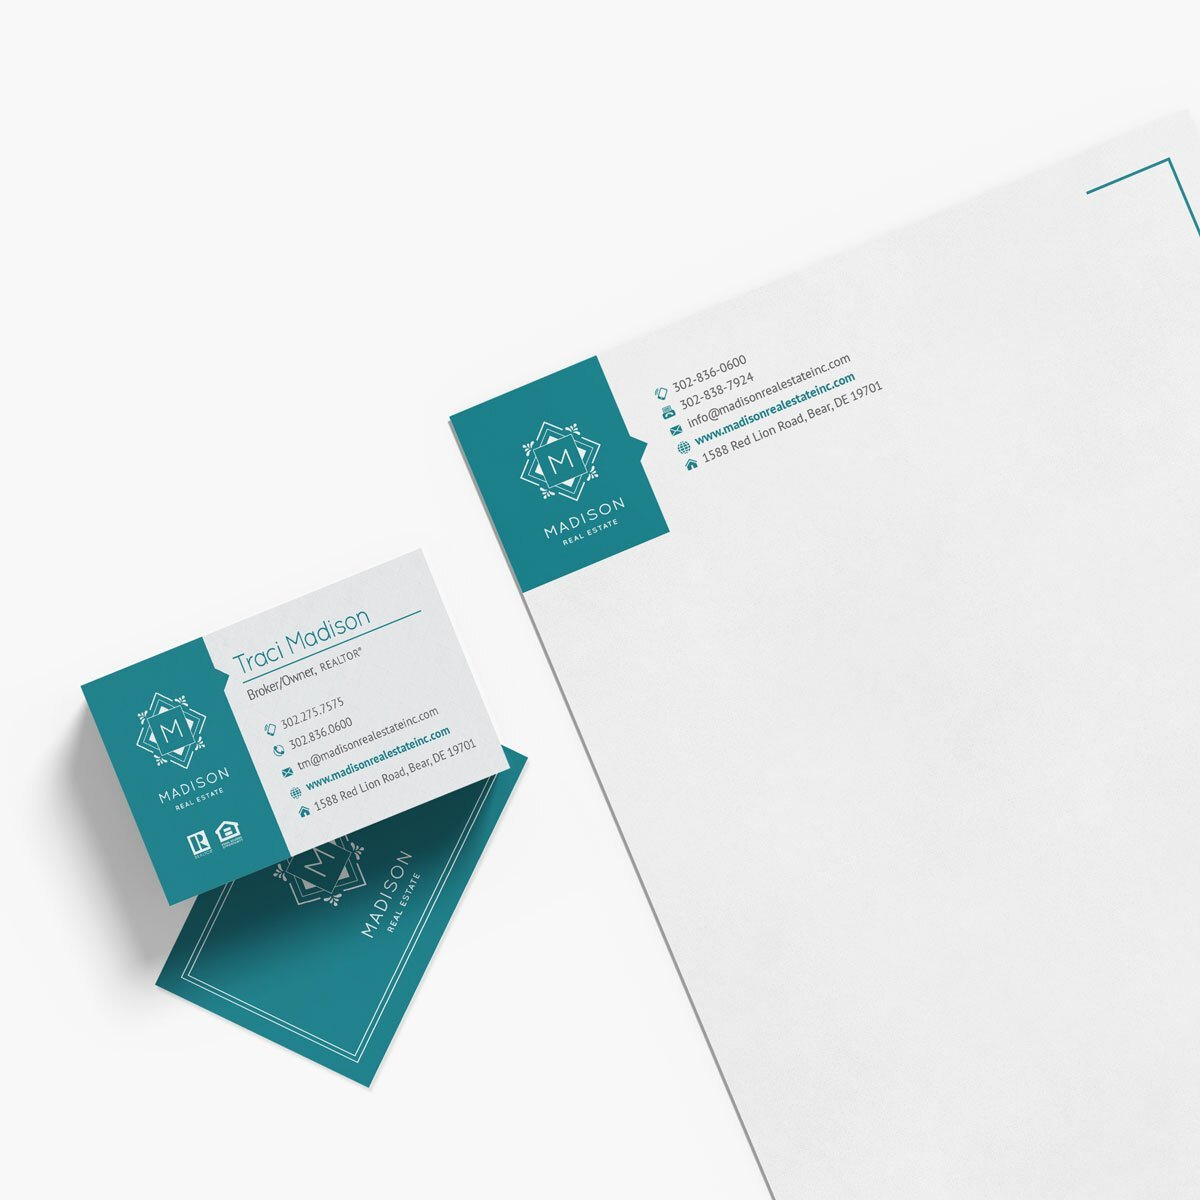 Madison Real Estate Business Cards & Letterhead Design by BrandSwan, a graphic design company